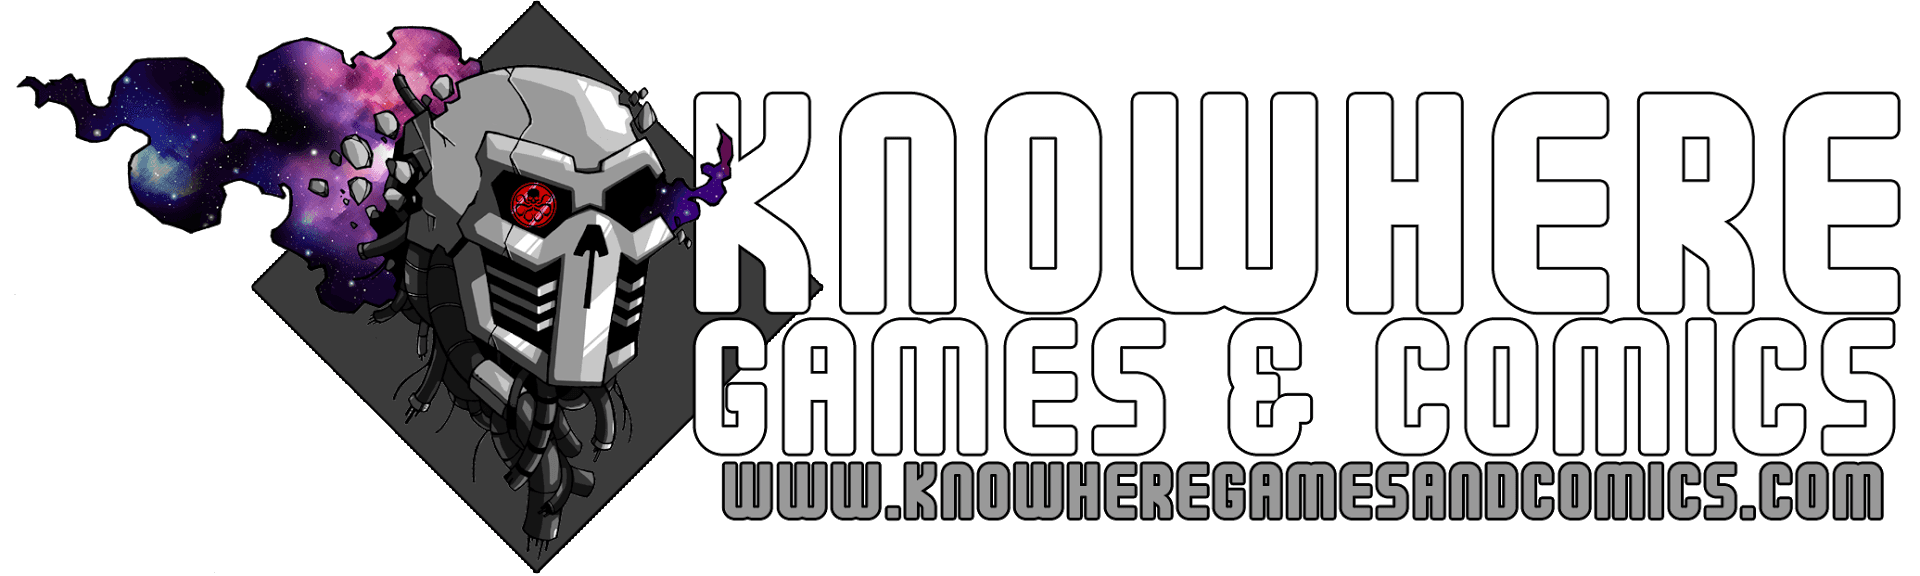 Knowhere Games and Comics Logo